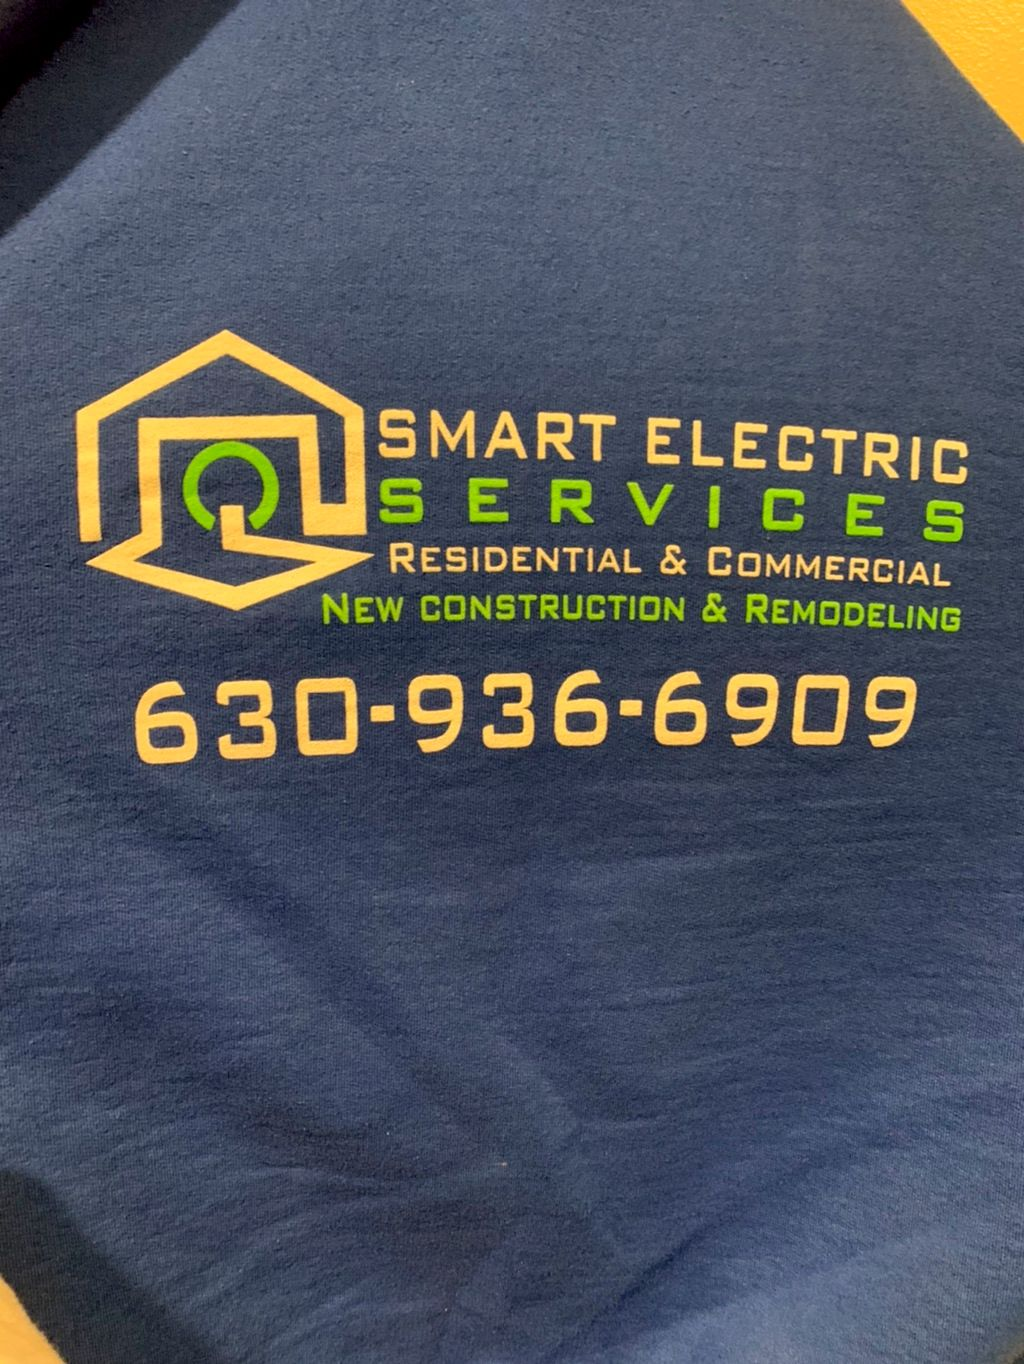 Smart Electric Services